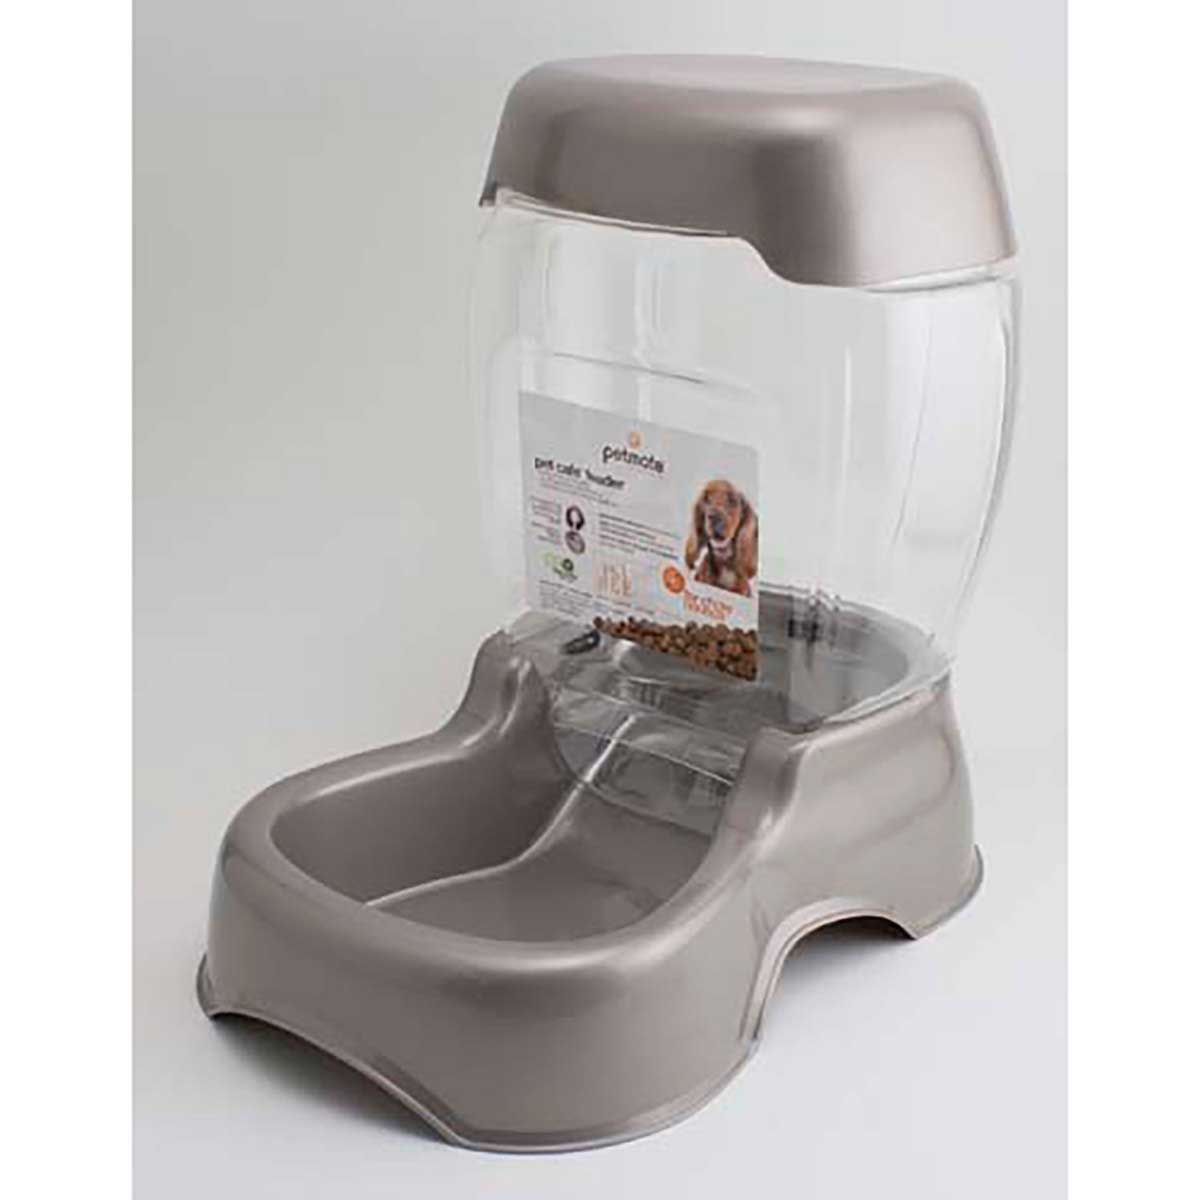 Pearl Tan Petmate Pet Cafe 6 lb Feeder for Large Pets